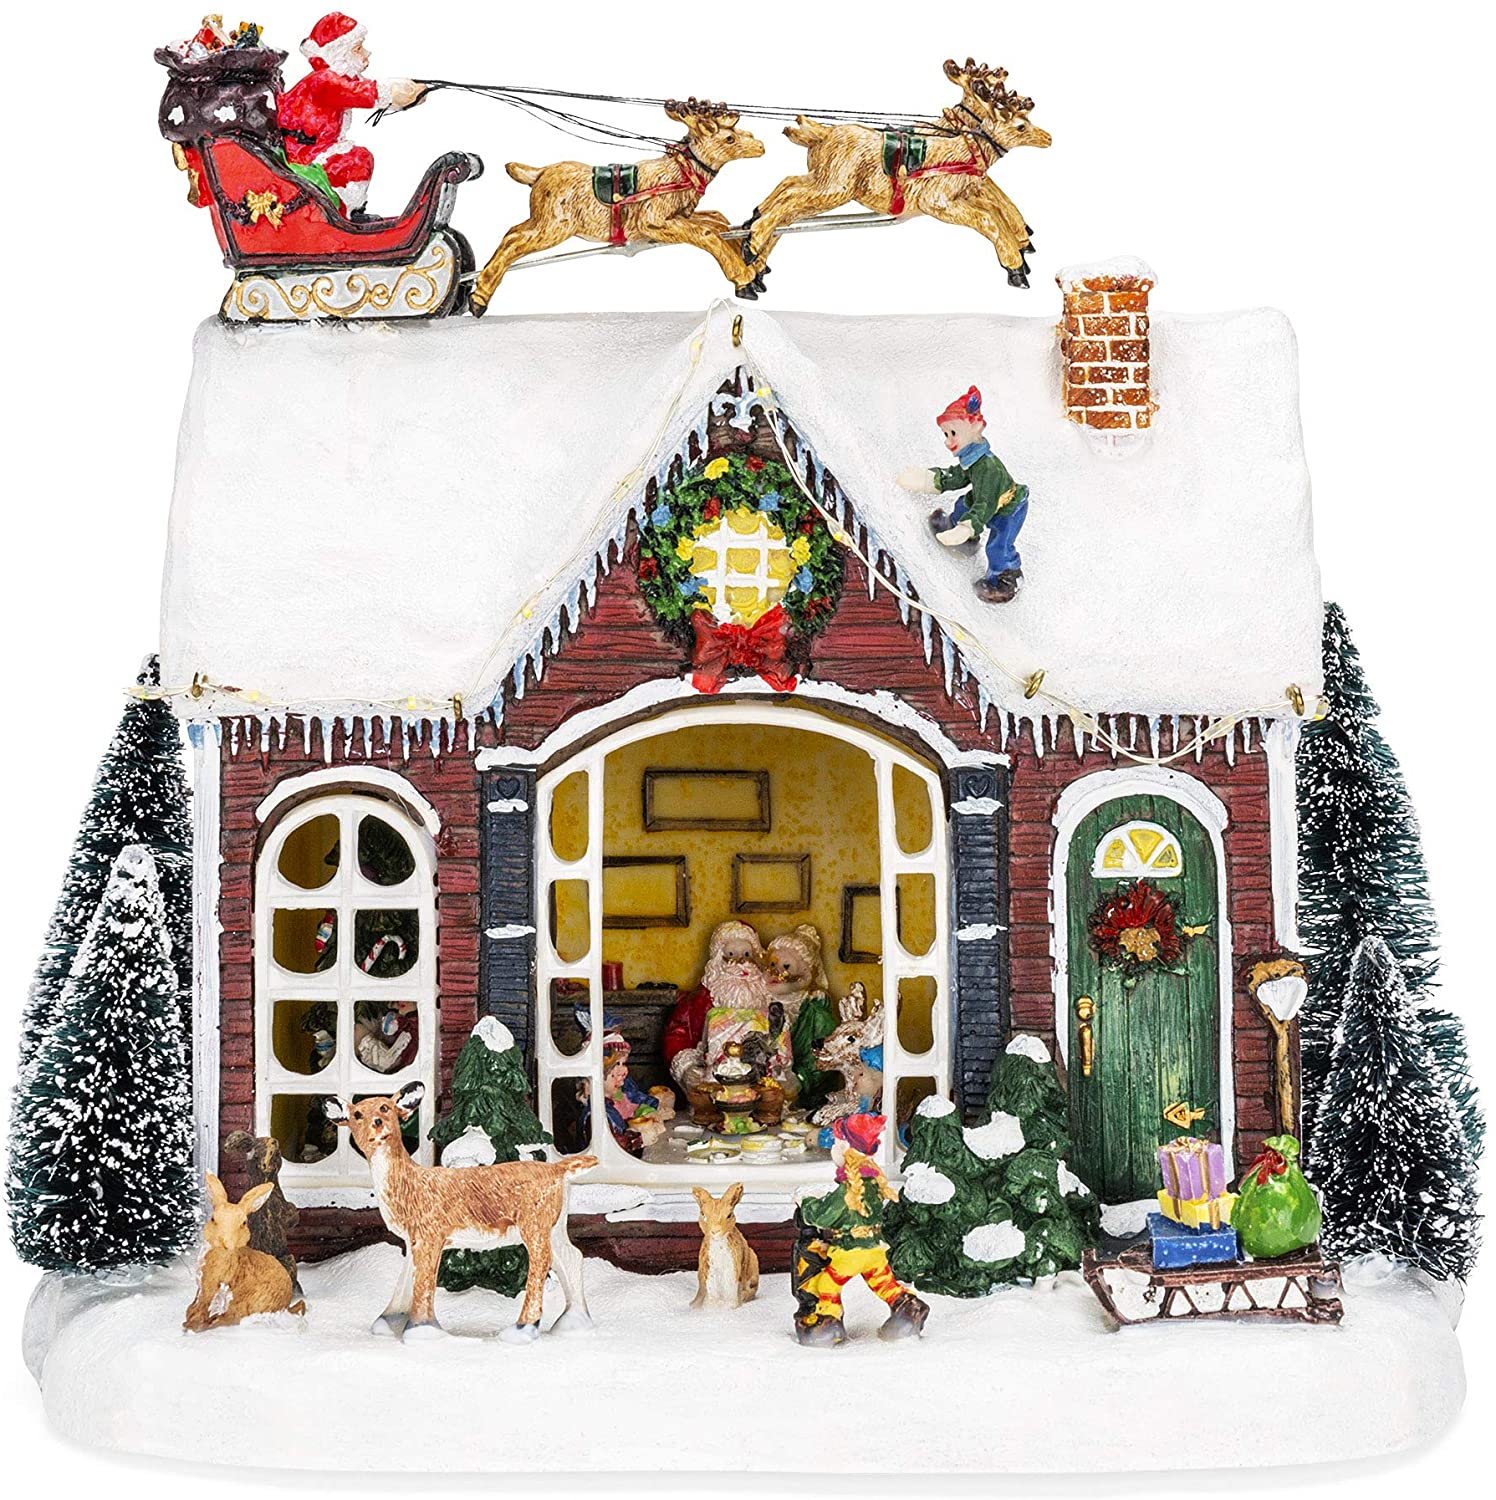 Pre-Lit Musical Tabletop Christmas Village Decoration for Fireplace Mantle